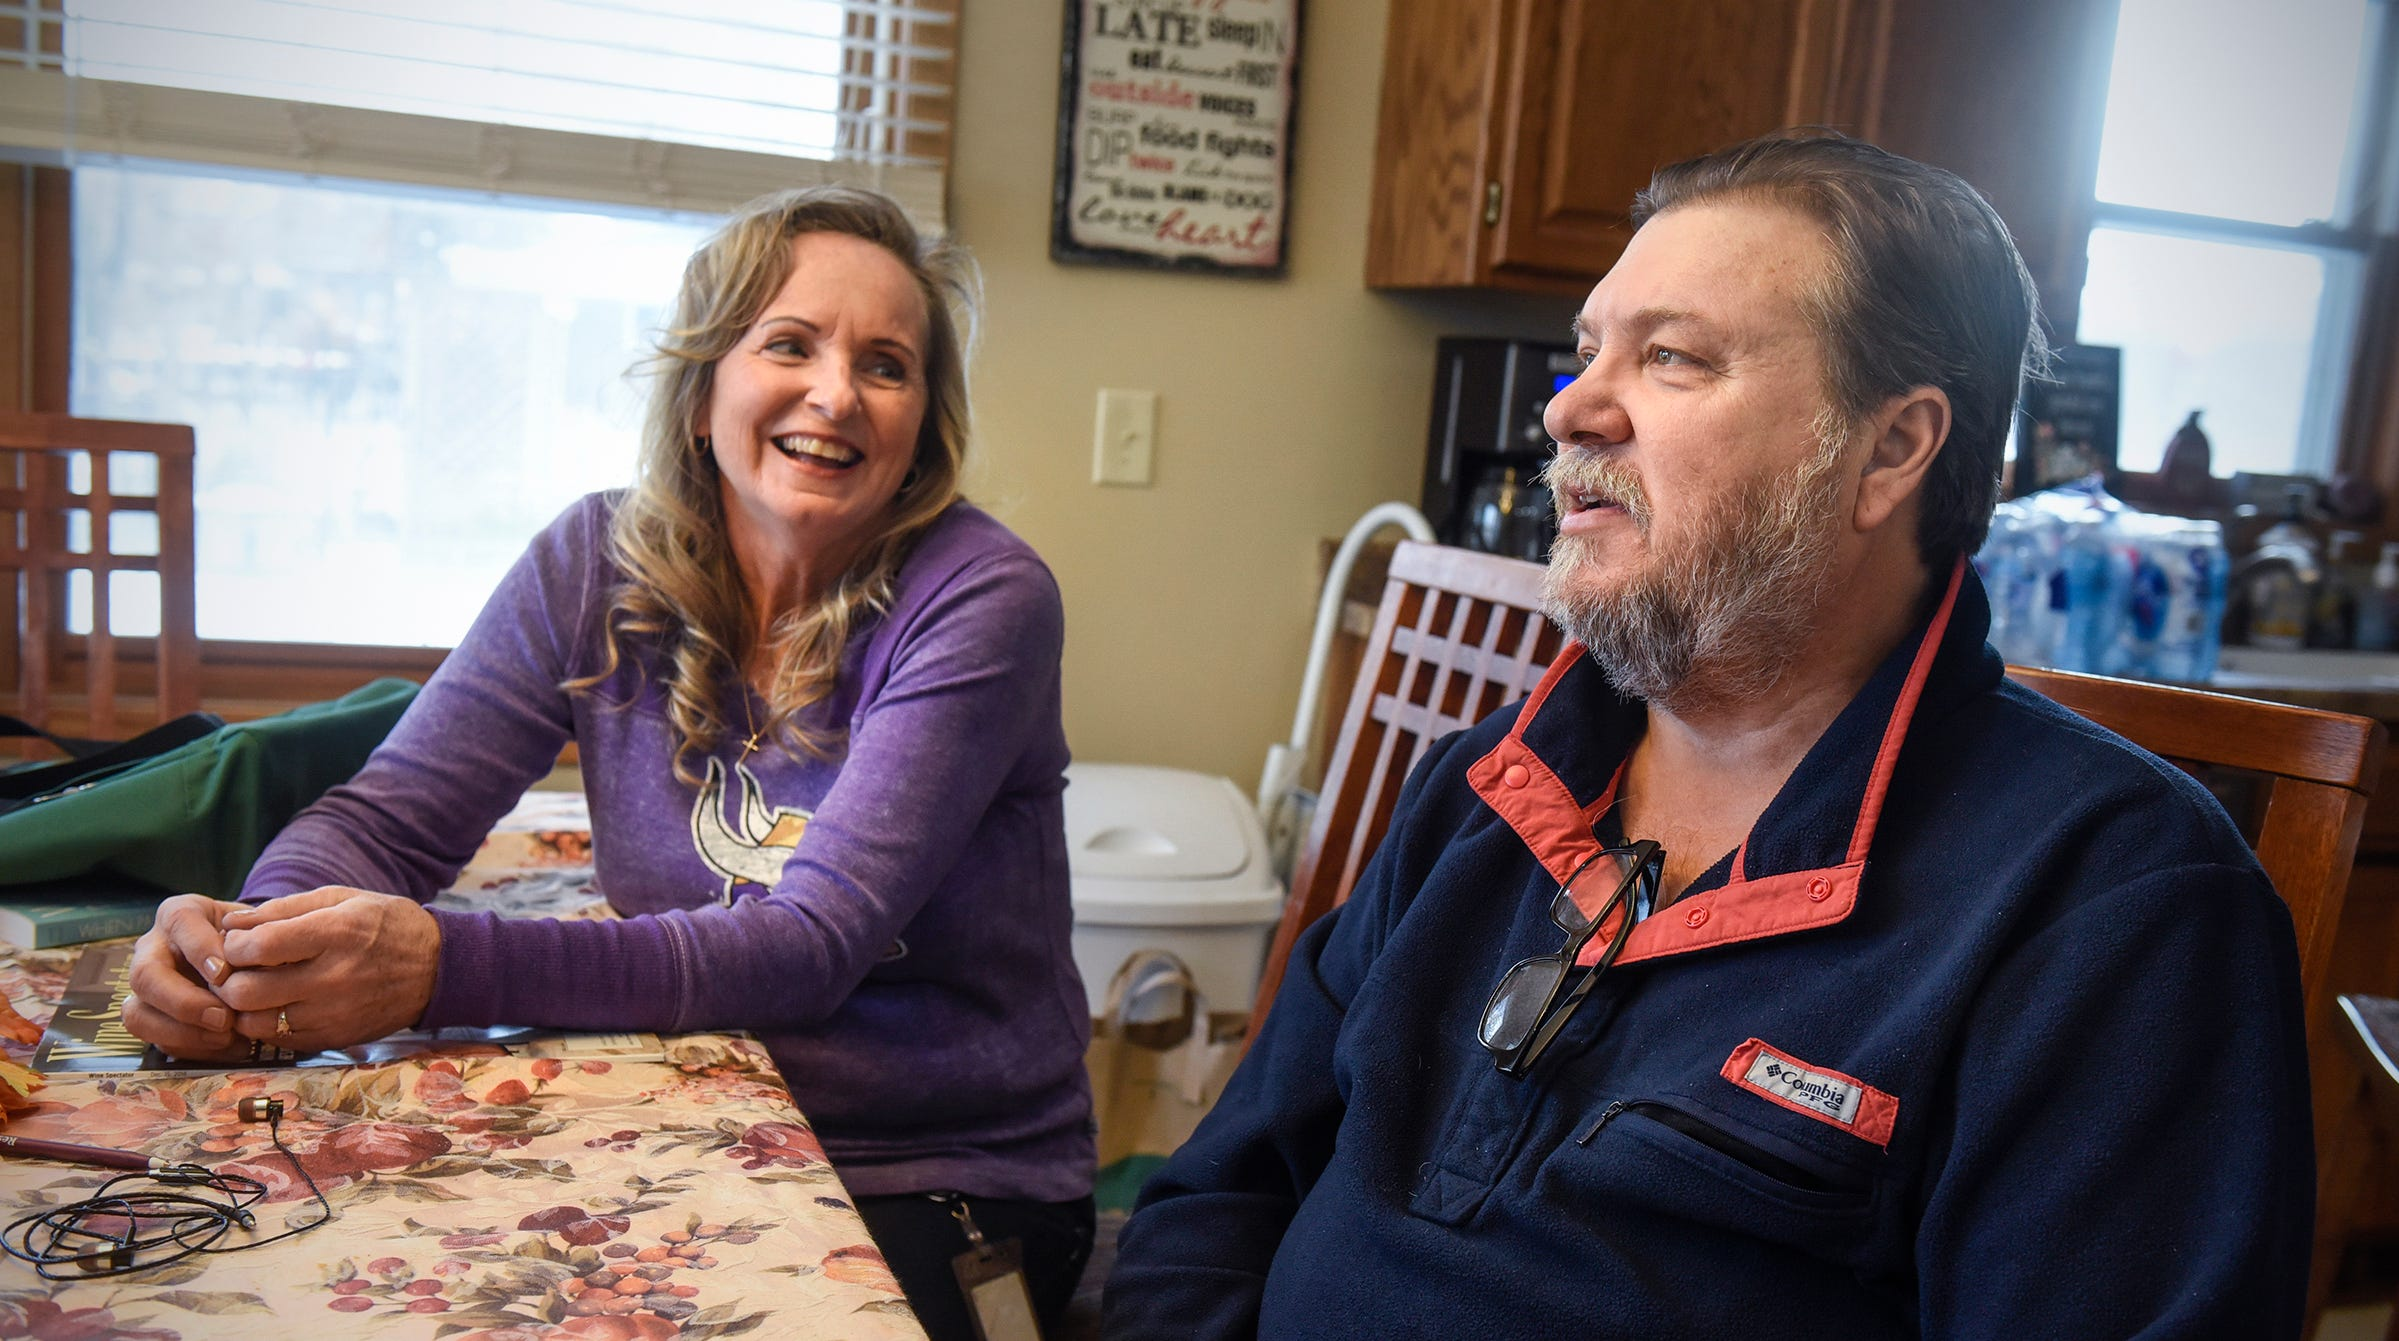 What you do for family: St. Cloud woman donates kidney to ex-husband